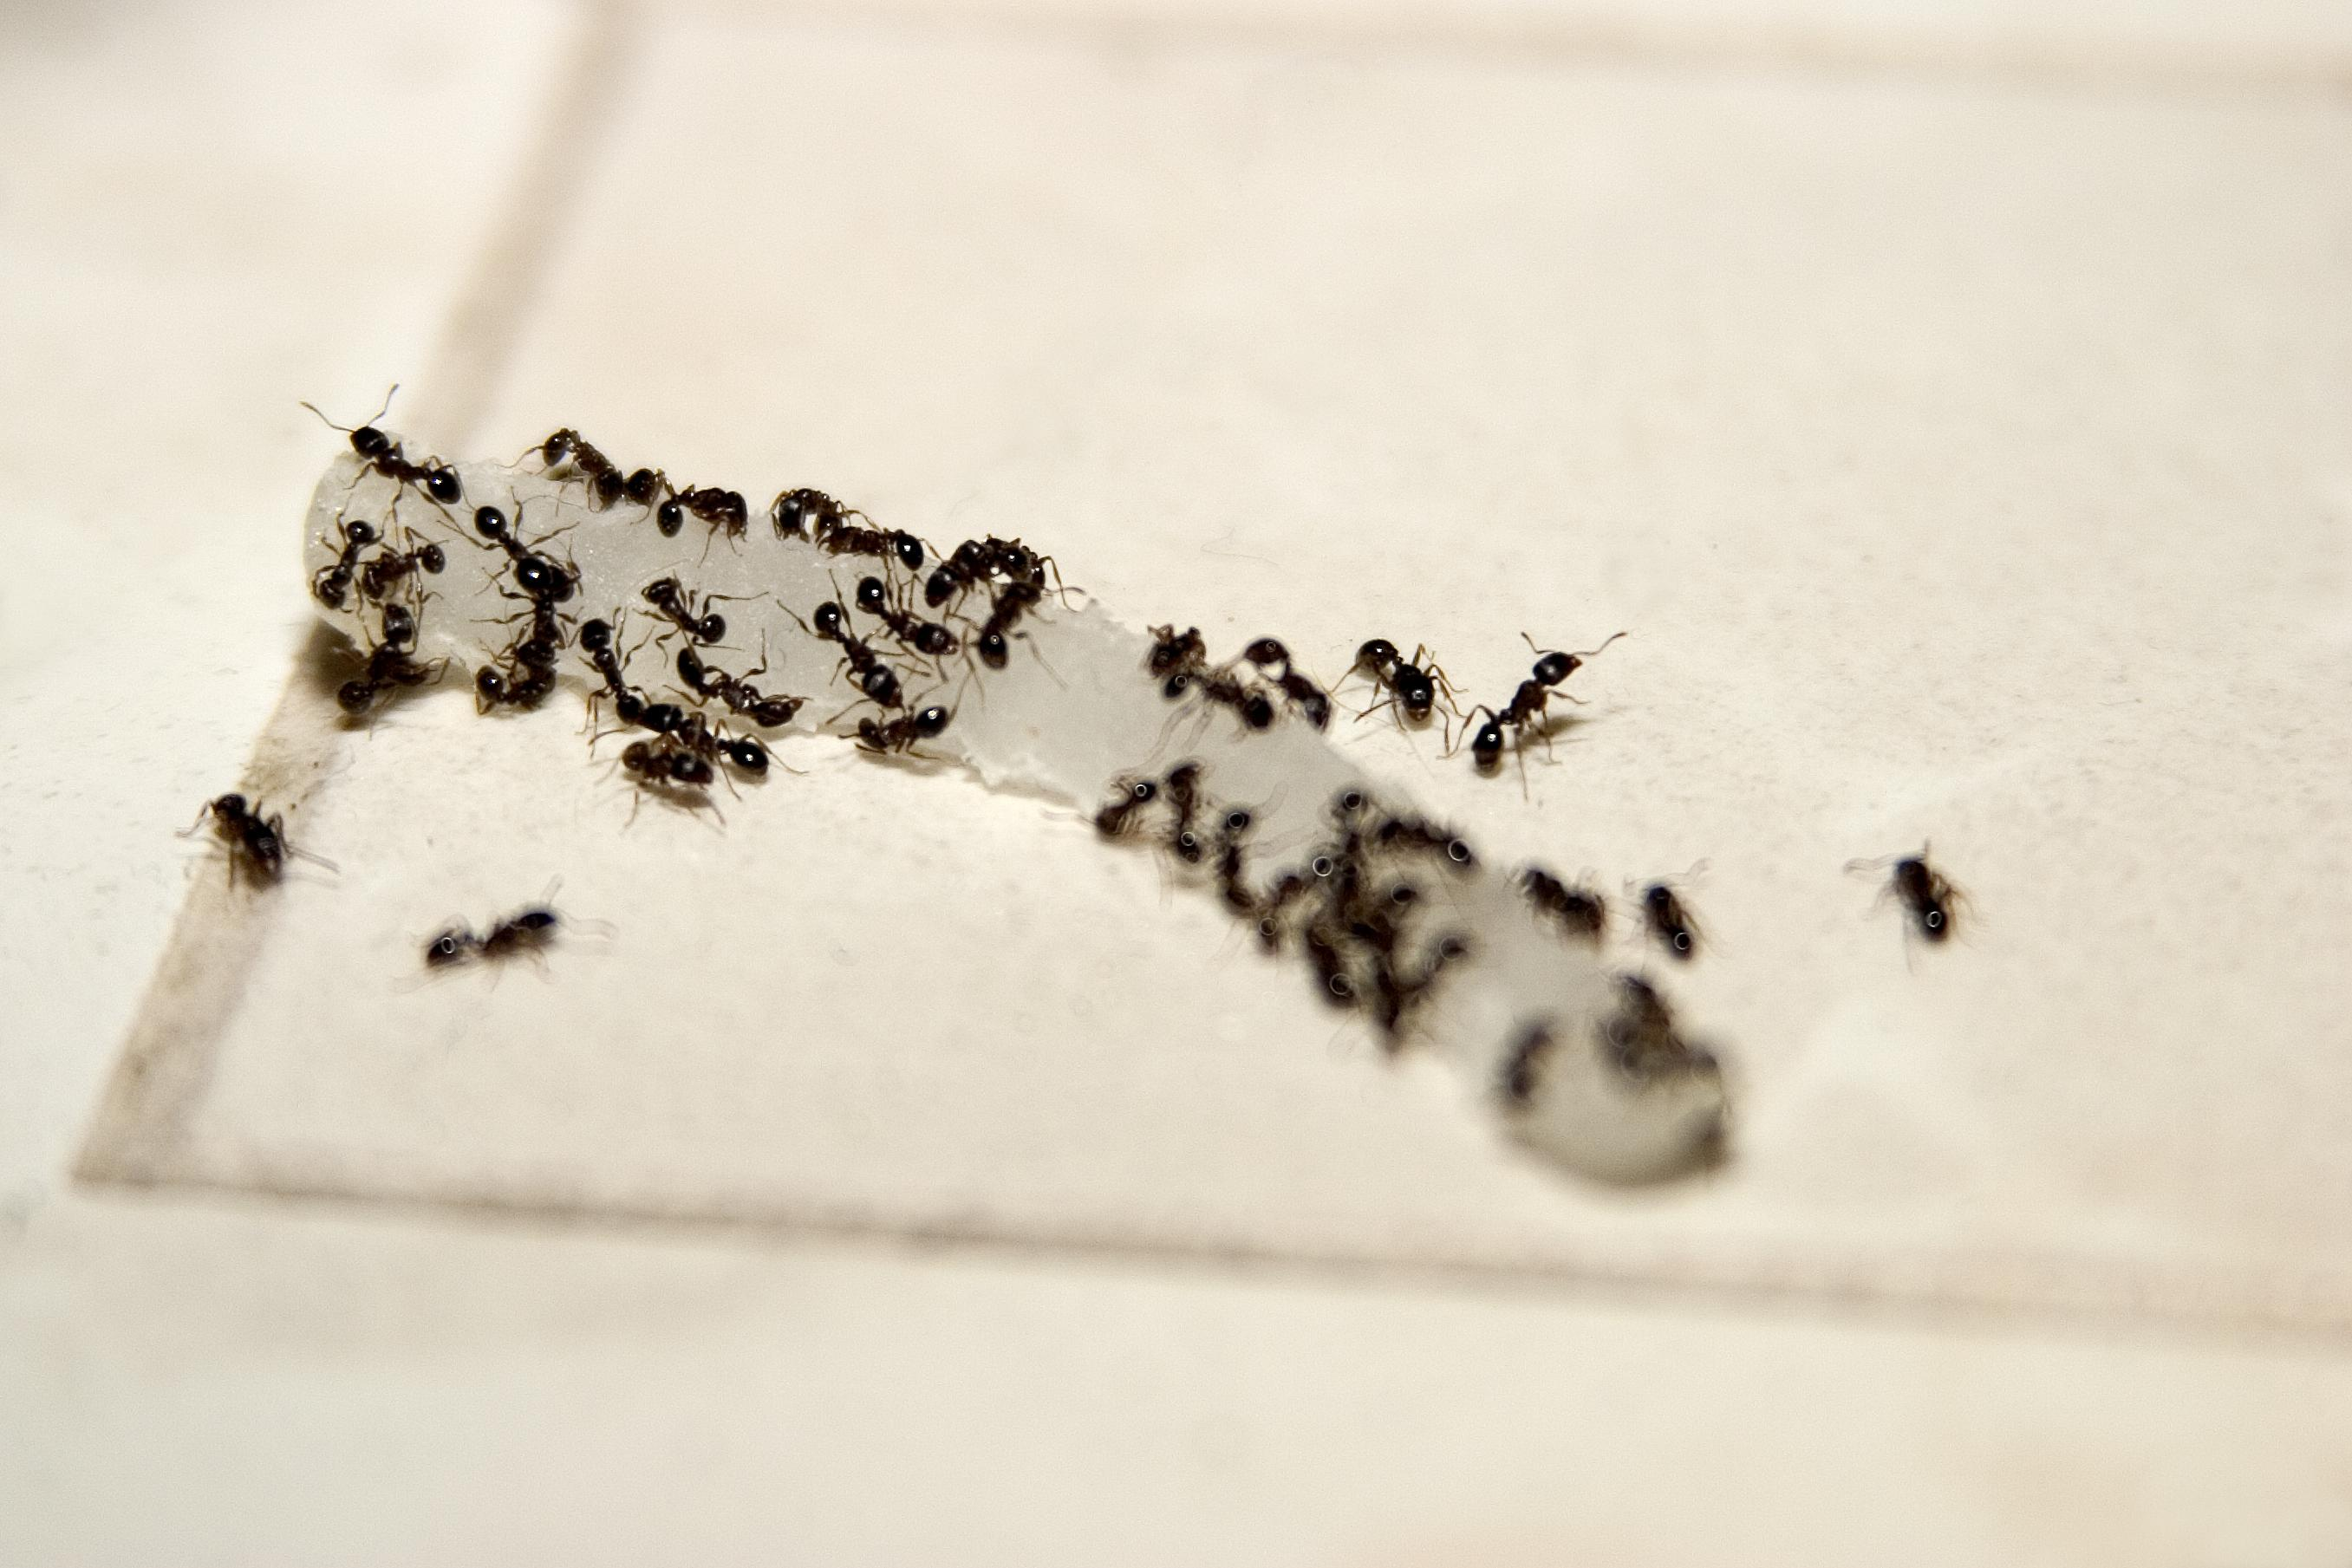 How Do You Get Rid Of Ants In Your House